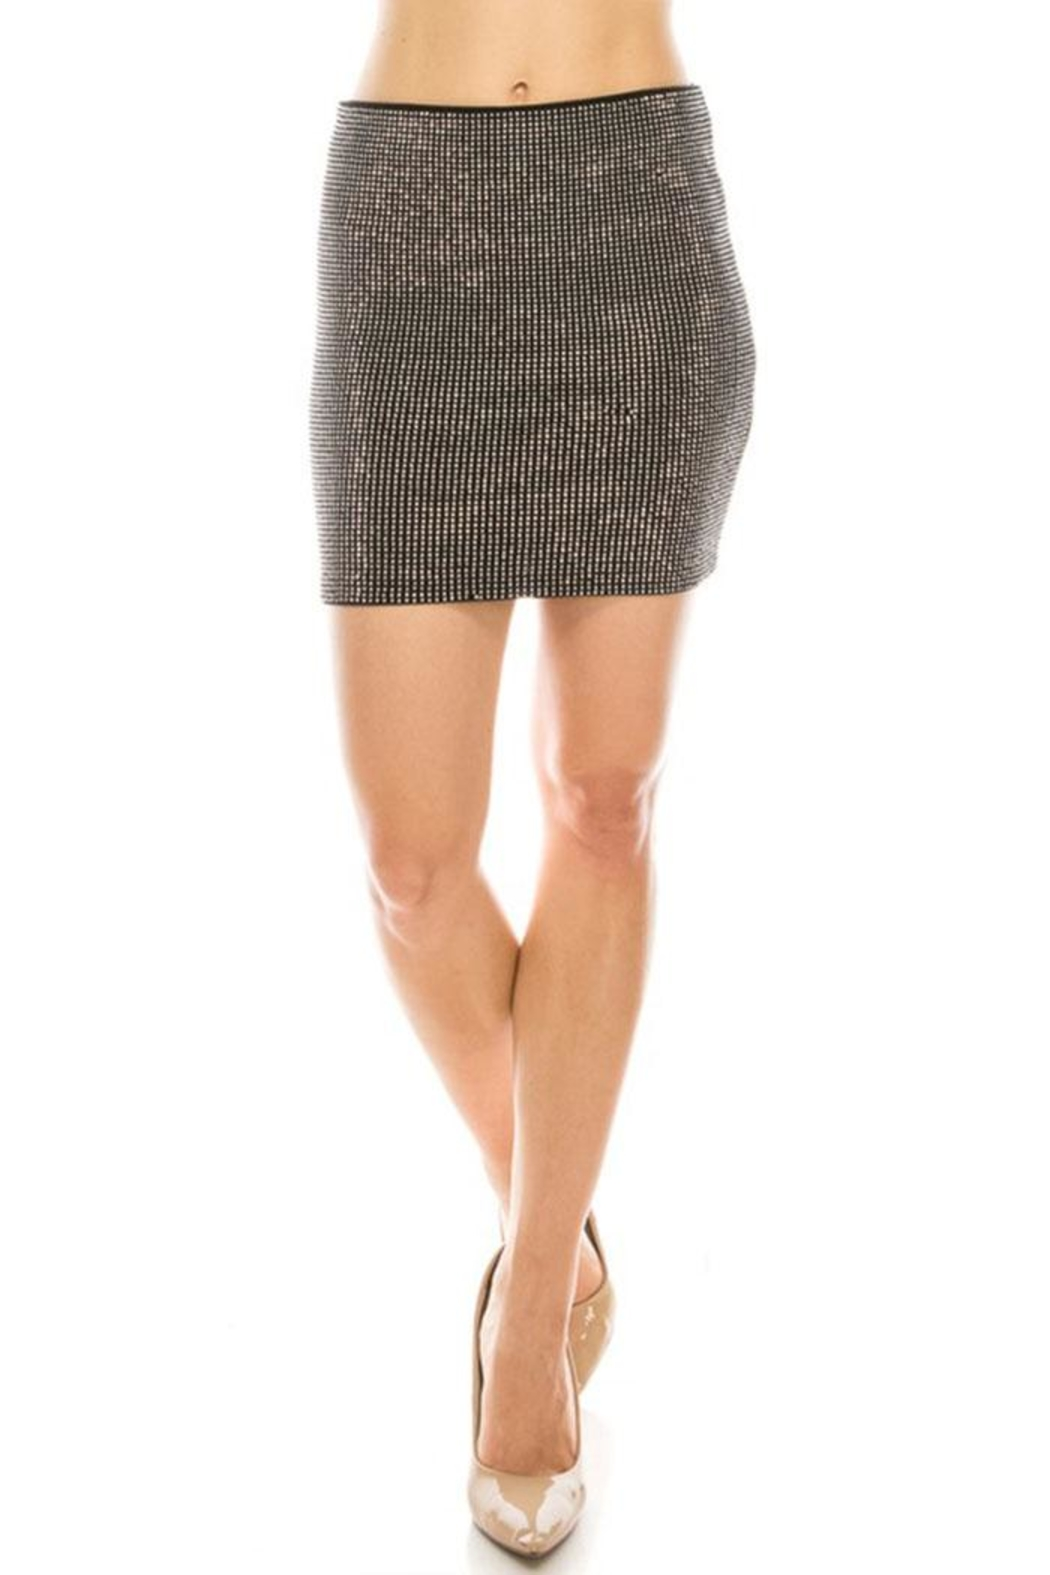 Salt Rhinestone Mini Skirt - Side Cropped Image